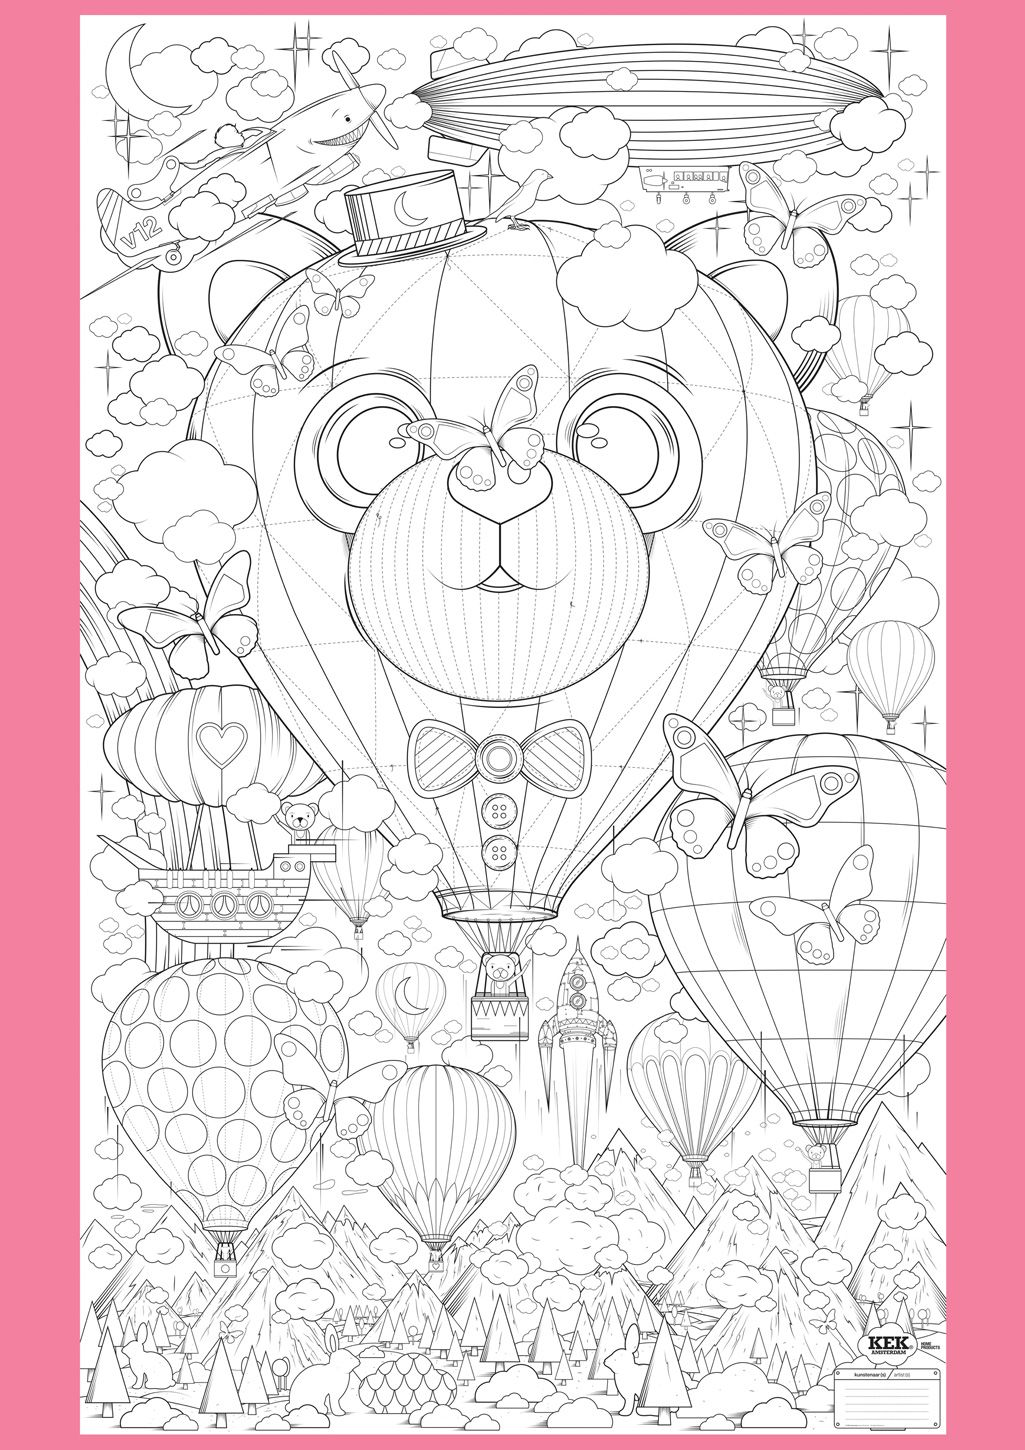 Supersized Colouring Picture Up And Away Kleurplaten Mandala Kleurplaten Gratis Kleurplaten